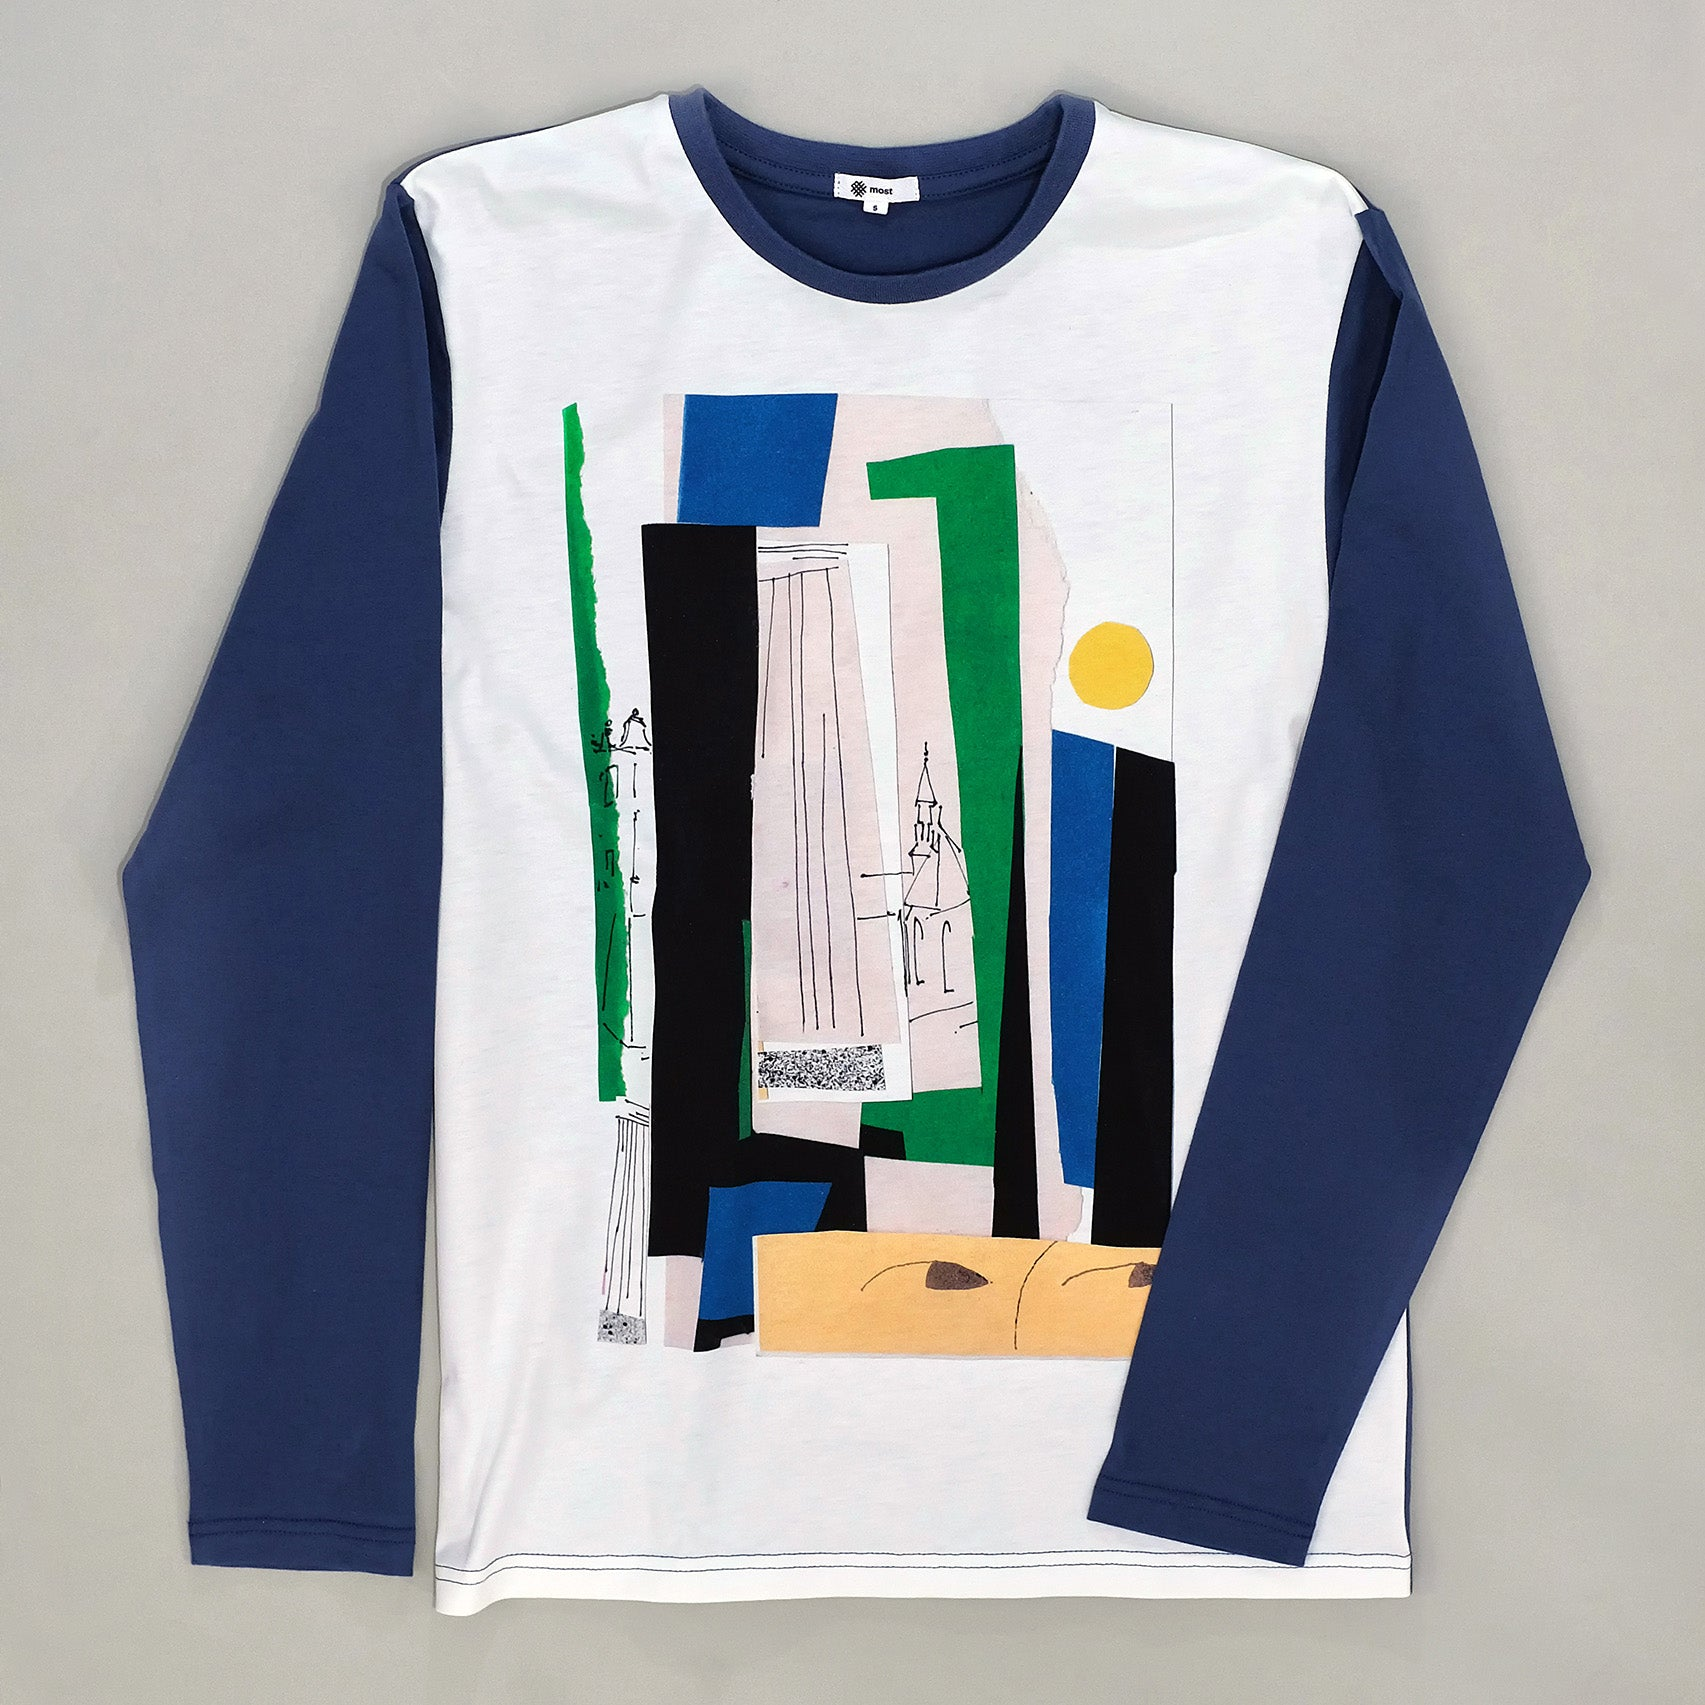 City long sleeves tee